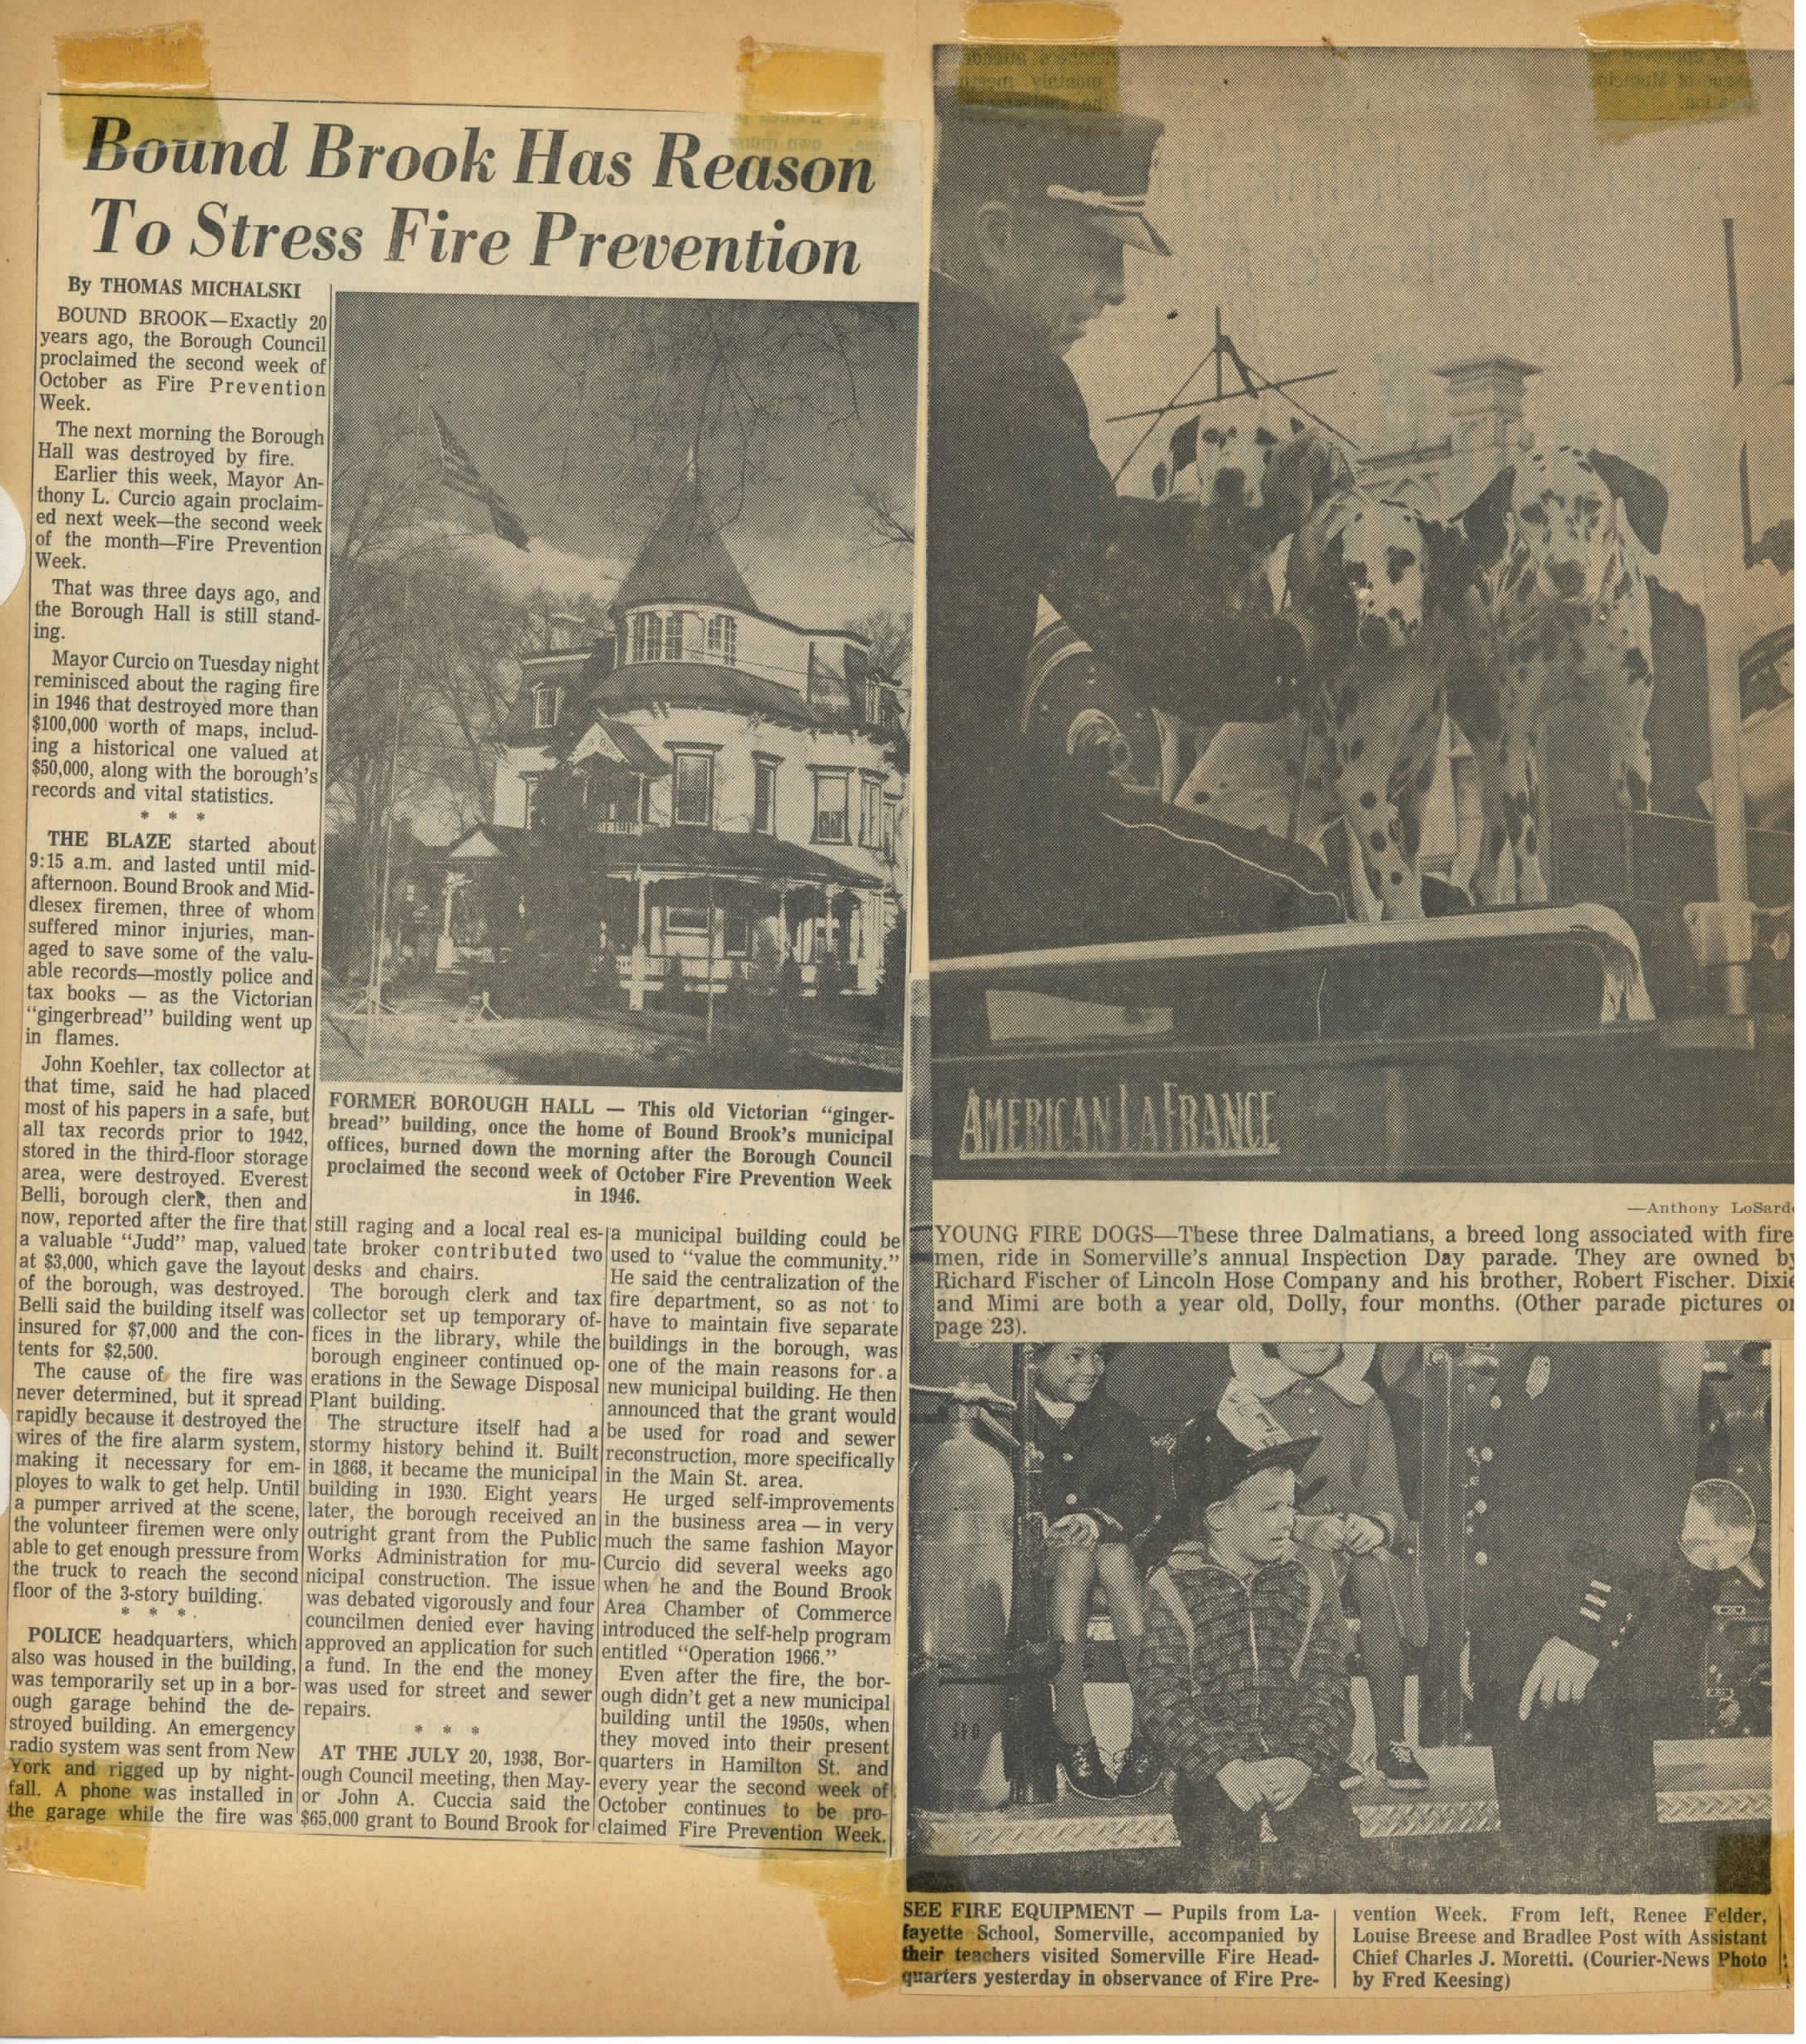 1966 Fire Preventin week.article_Page_1_Image_0001.jpg